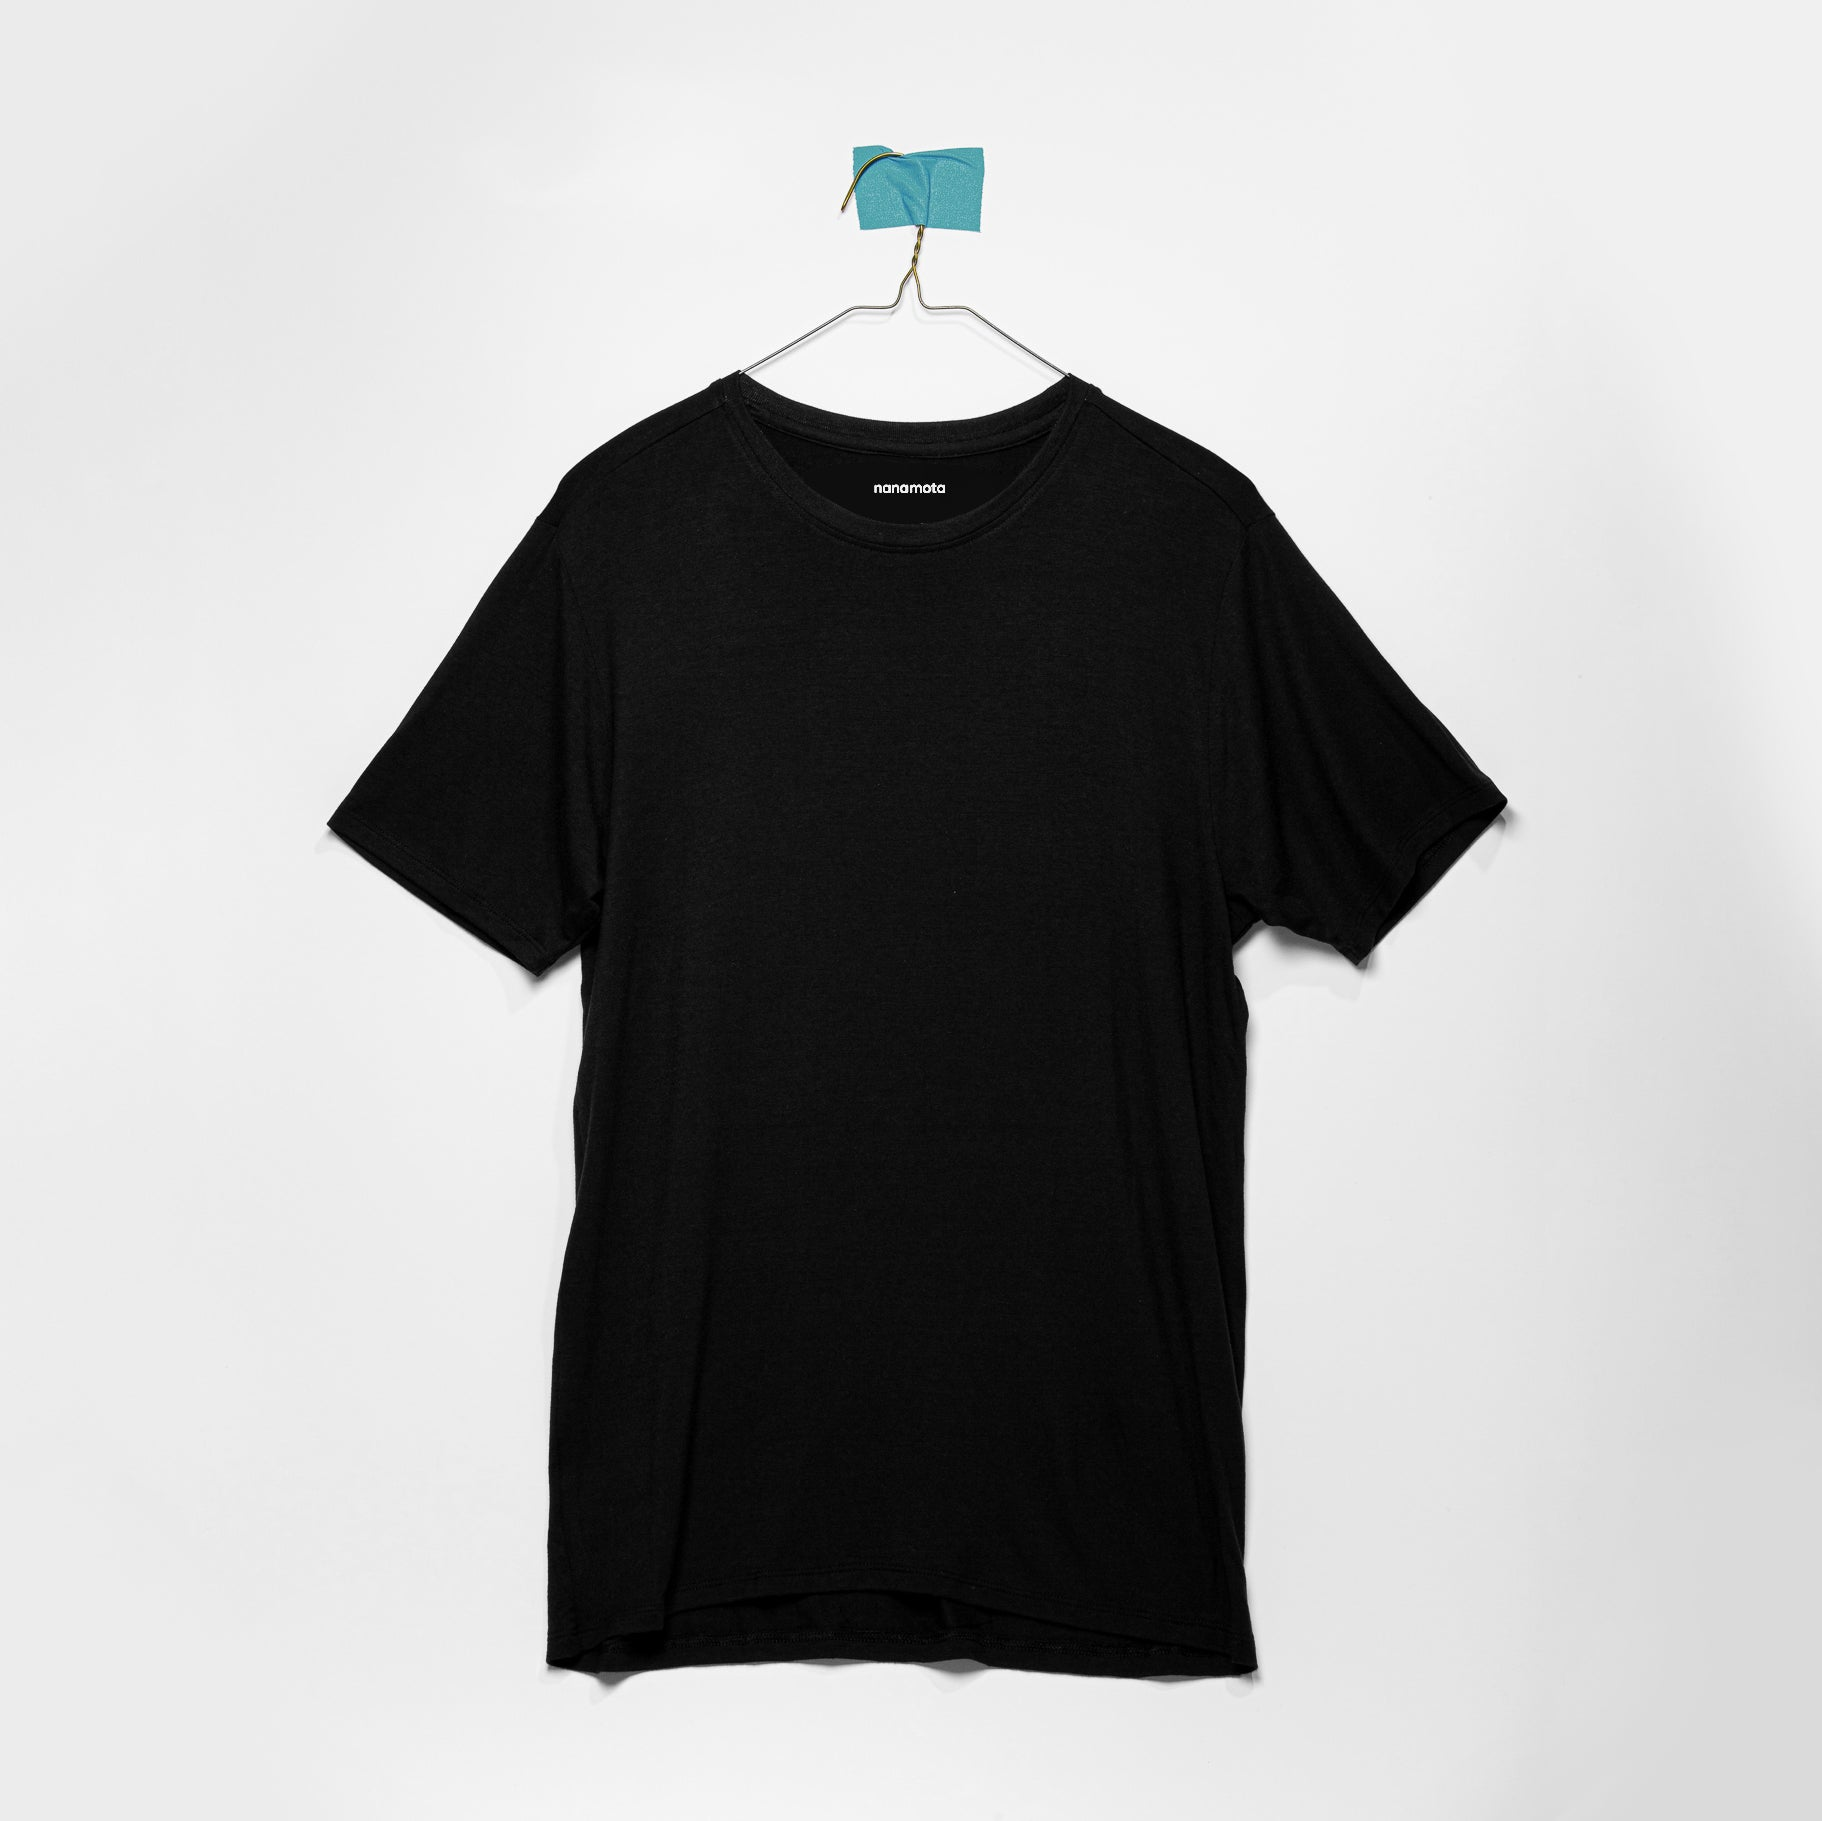 'THE SOFTEST TEE' MENS FITTED SHORT-SLEEVE BLACK